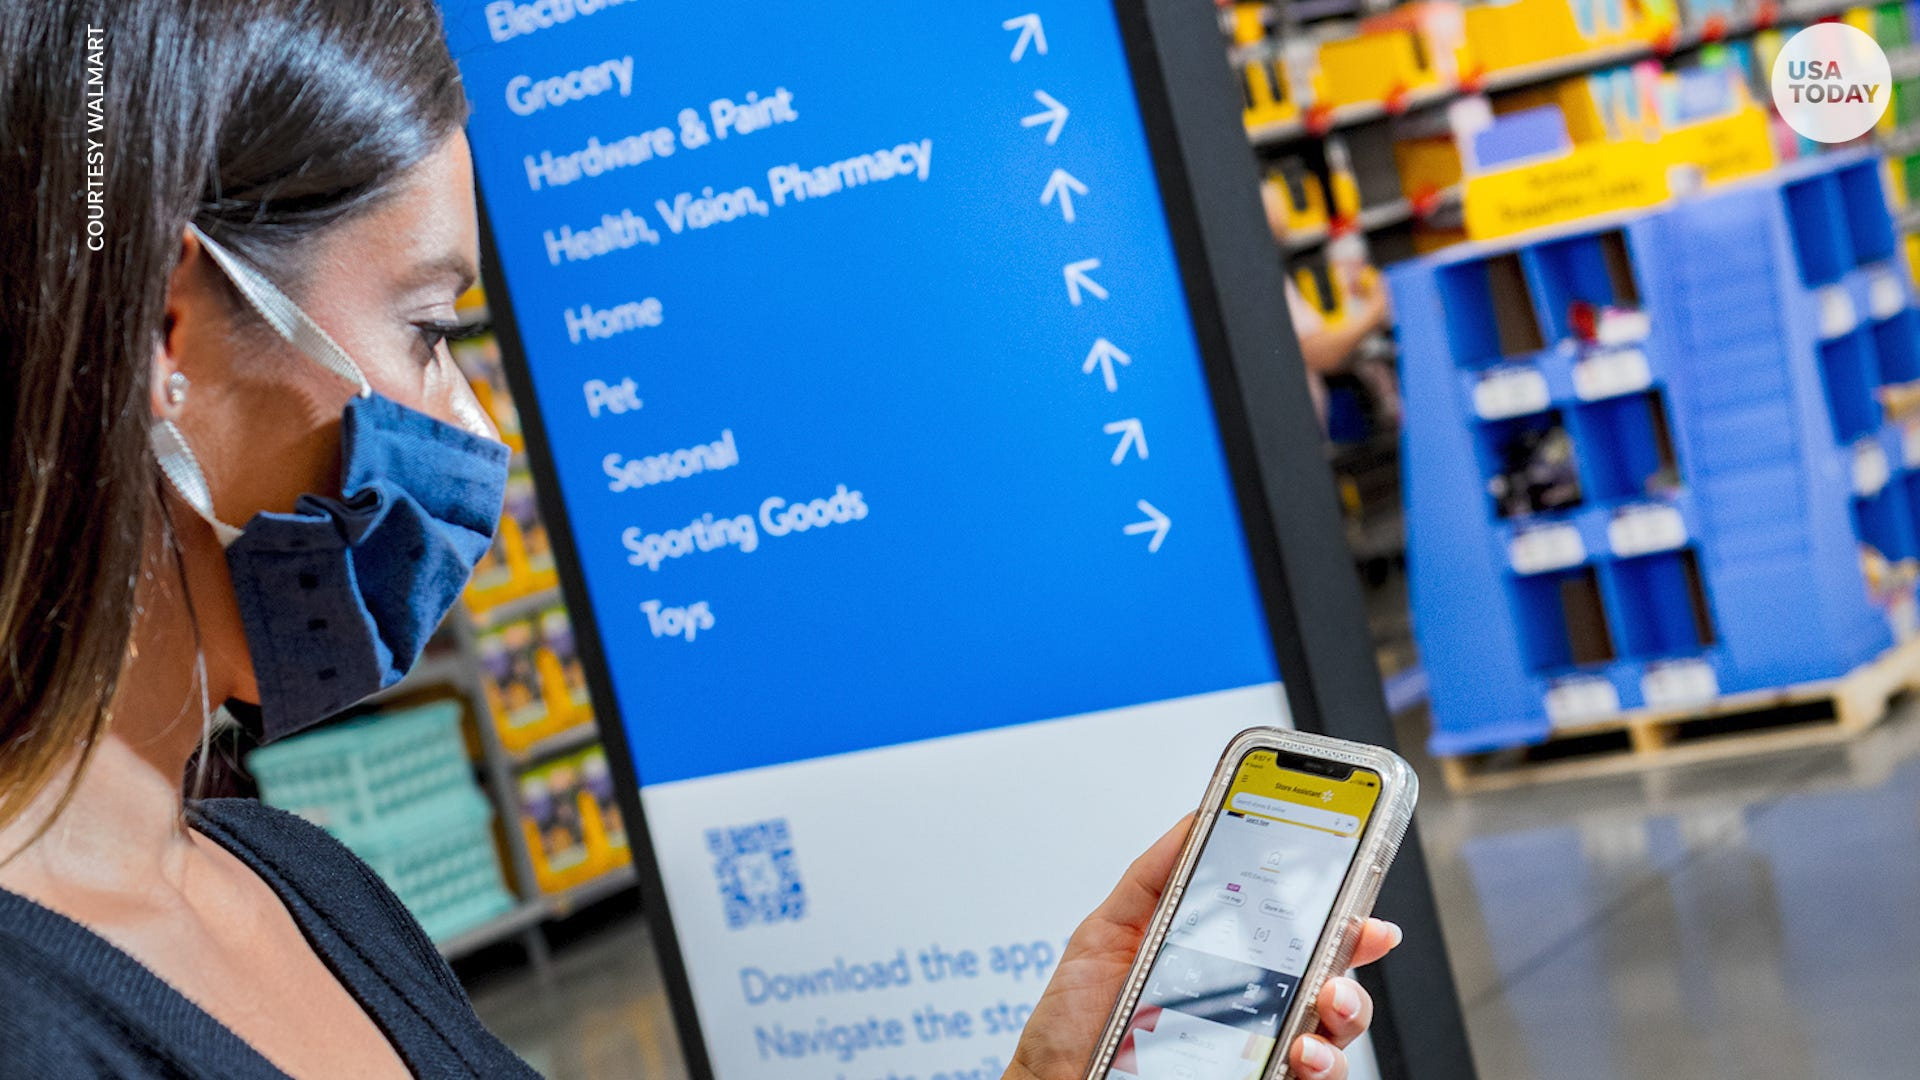 Walmart revamping with new store design that includes contactless options